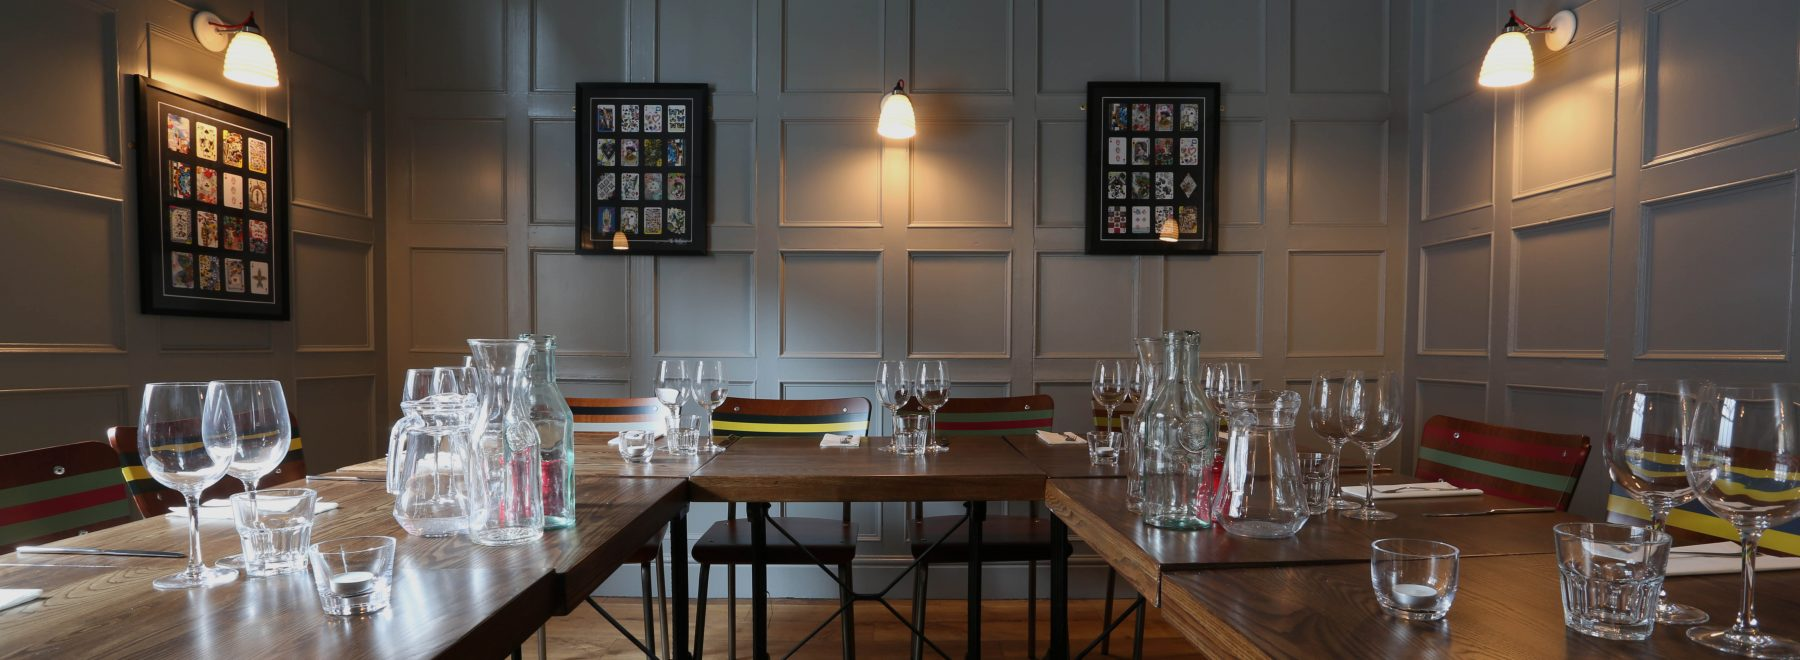 Function Rooms Pubs London